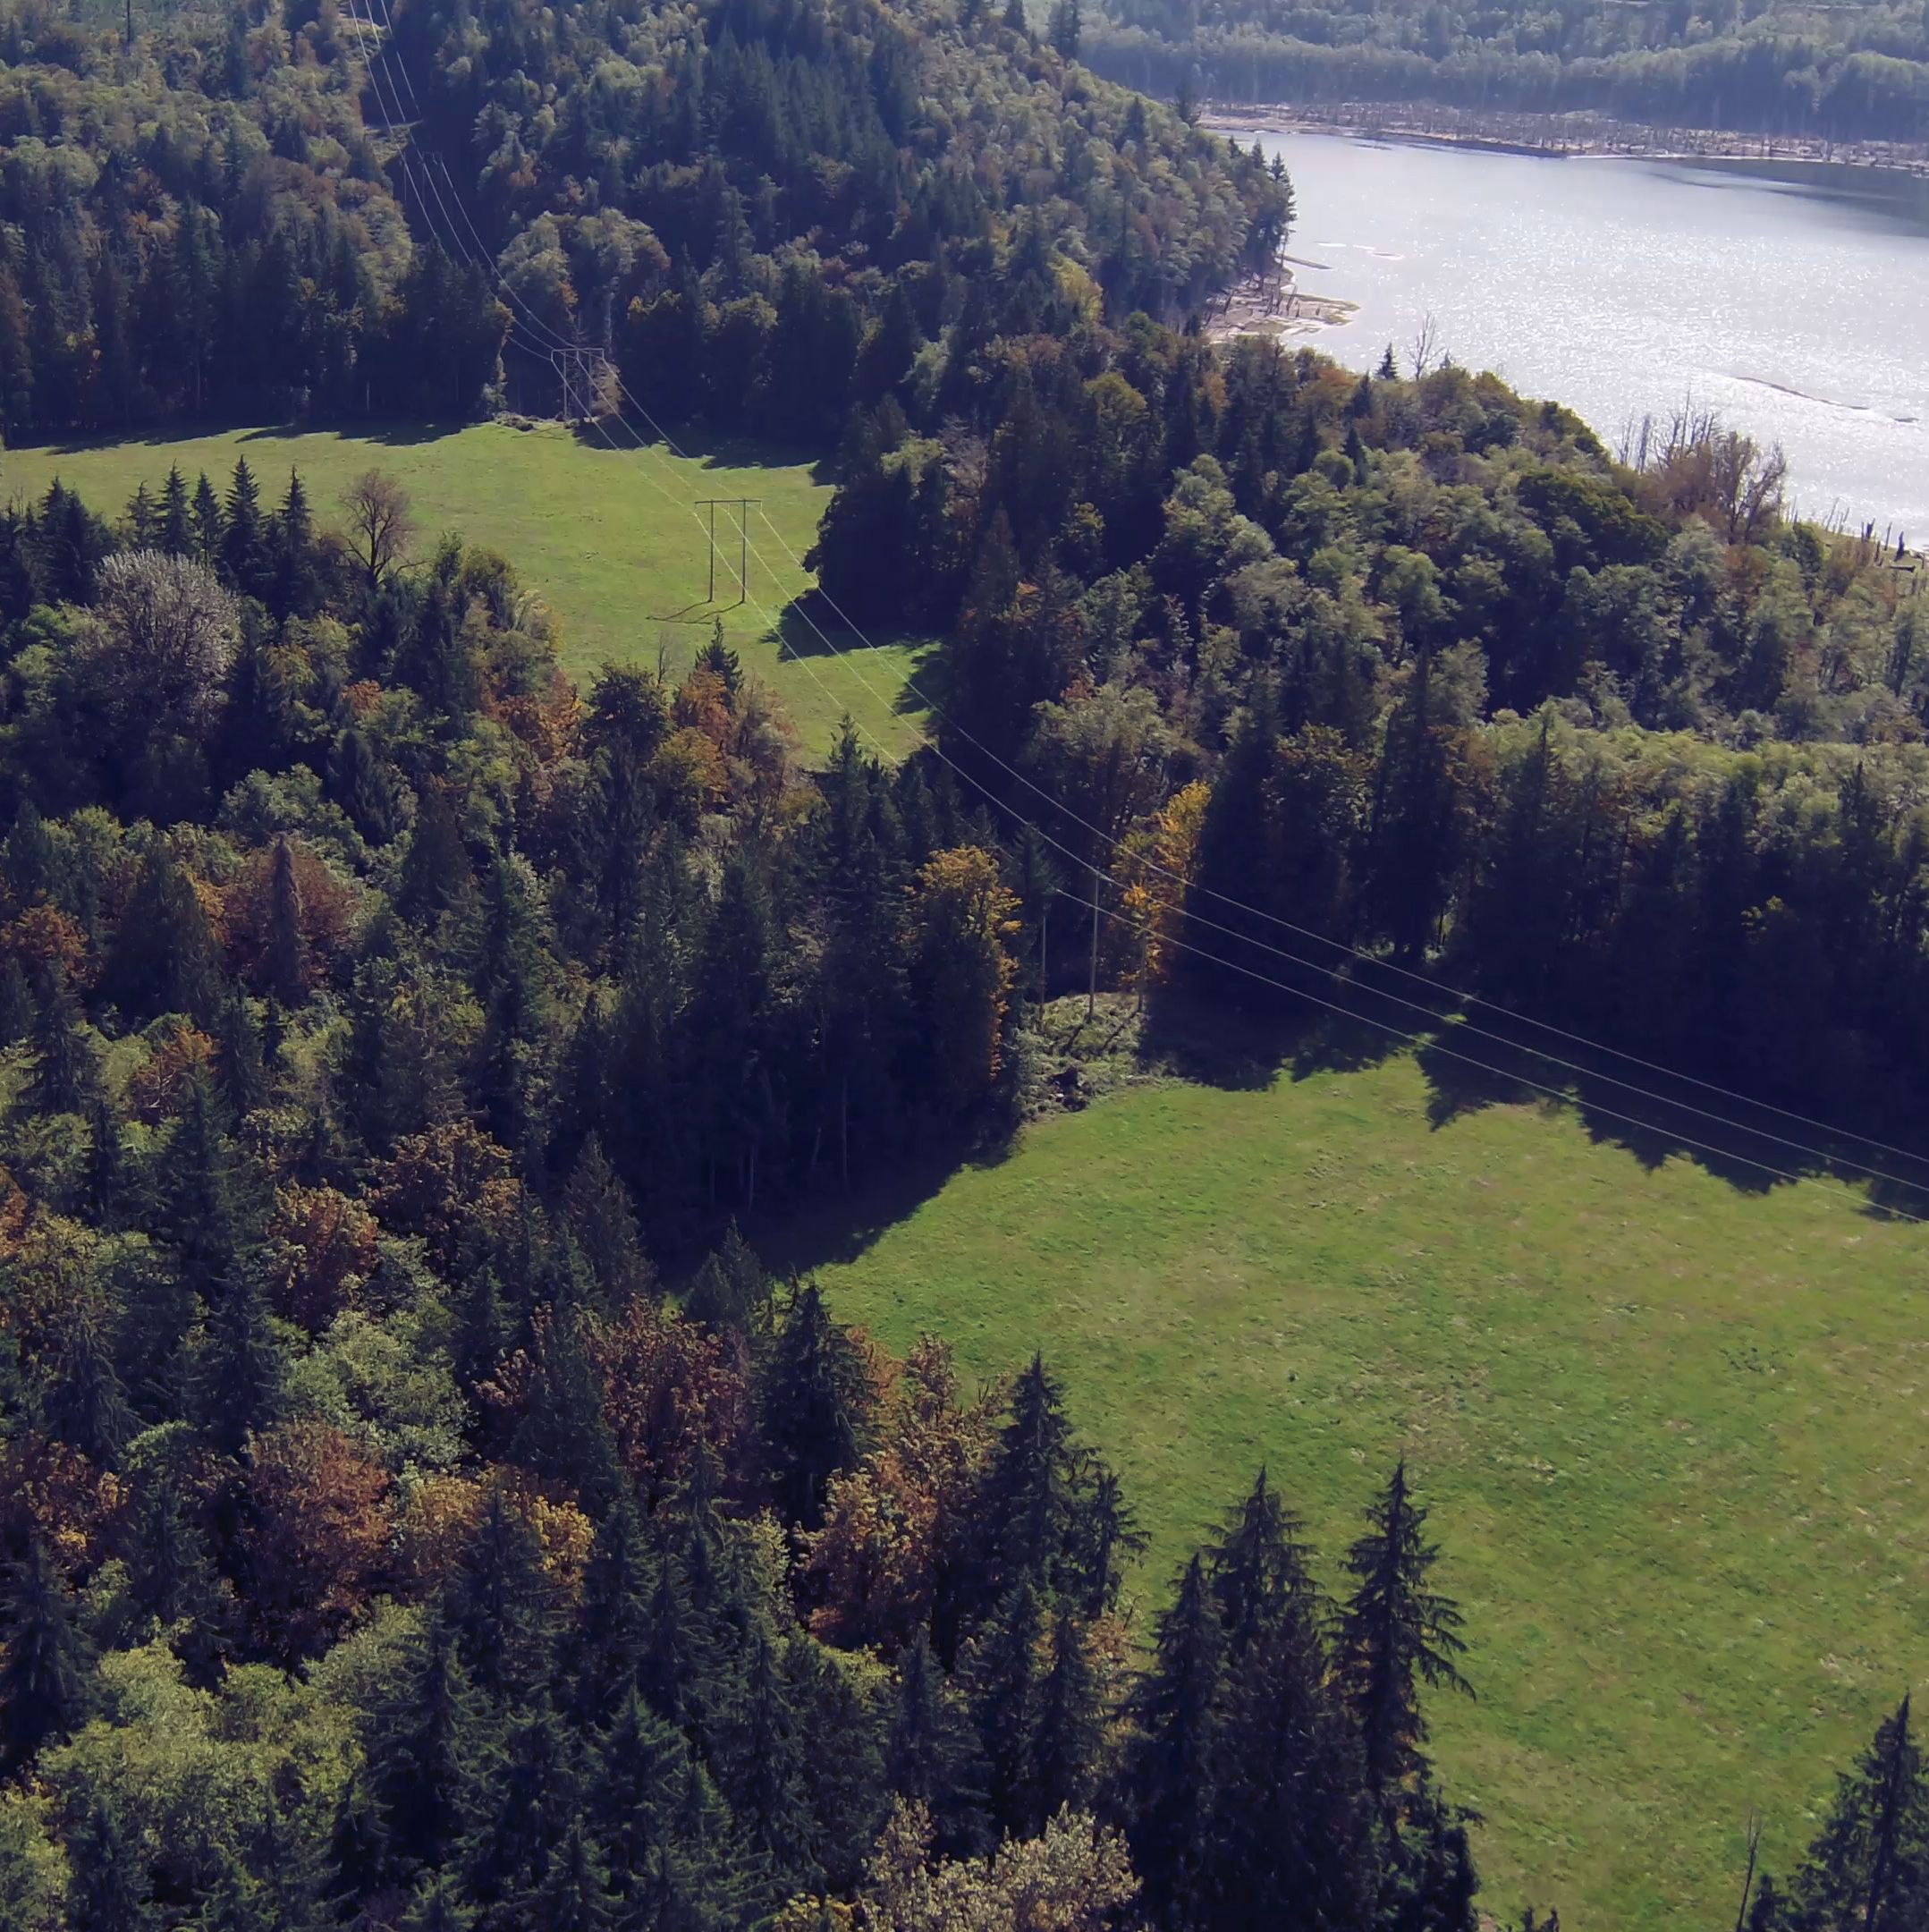 Tacoma Public Utilities protects habitat and sourcewater within the Green River Watershed